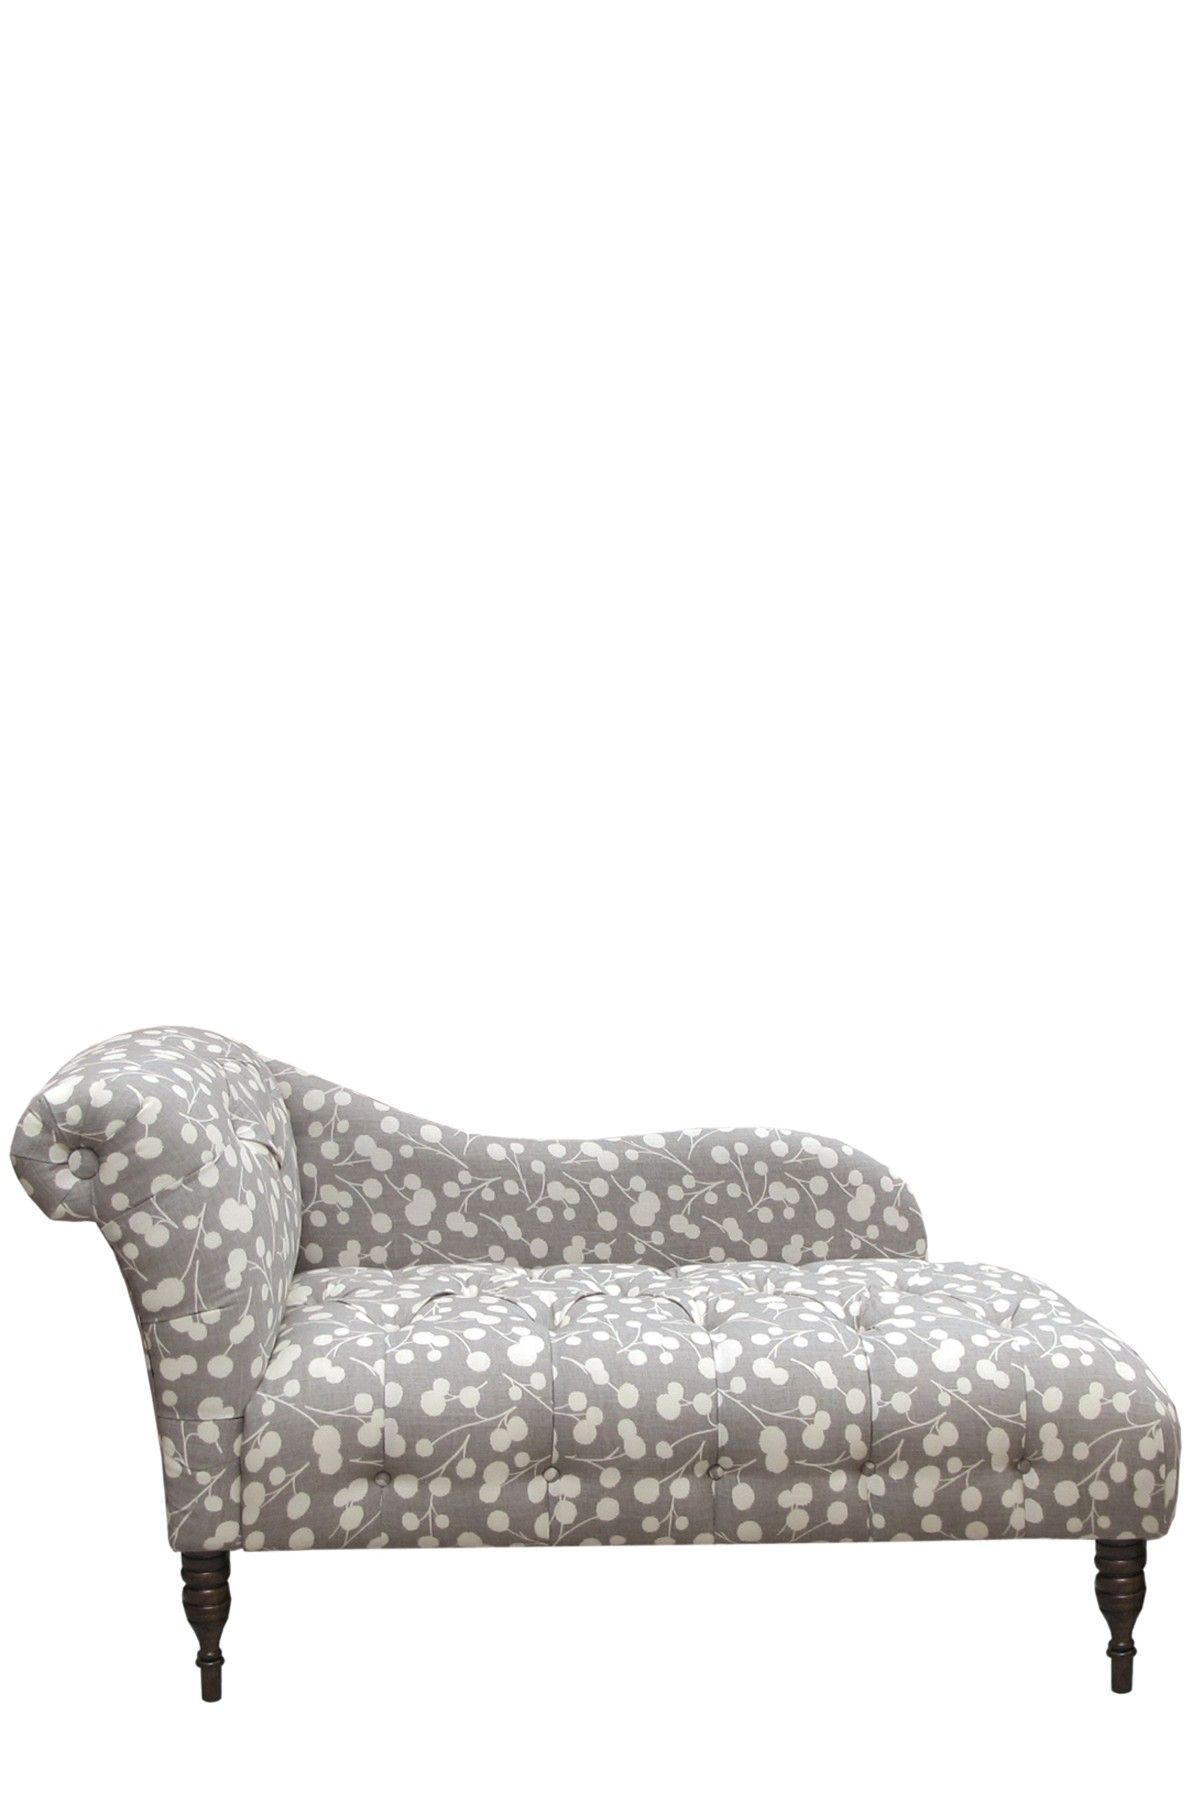 upholstered chaise lounge chaise lounge